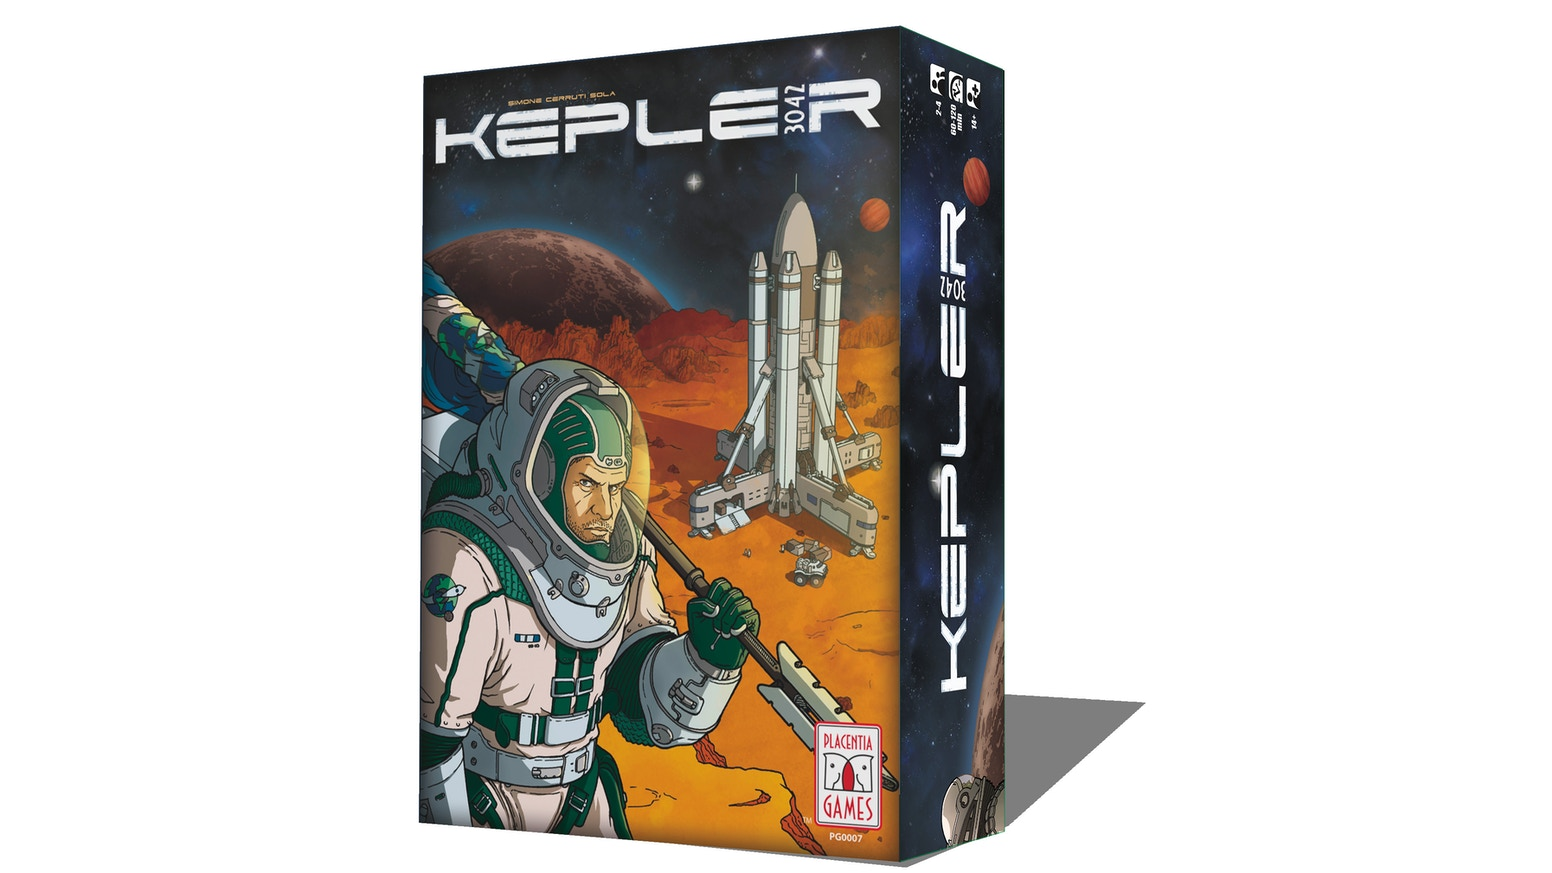 Manage limited resources with everchanging strategies in this game where space discovery and future meet real science for 1-4 players!